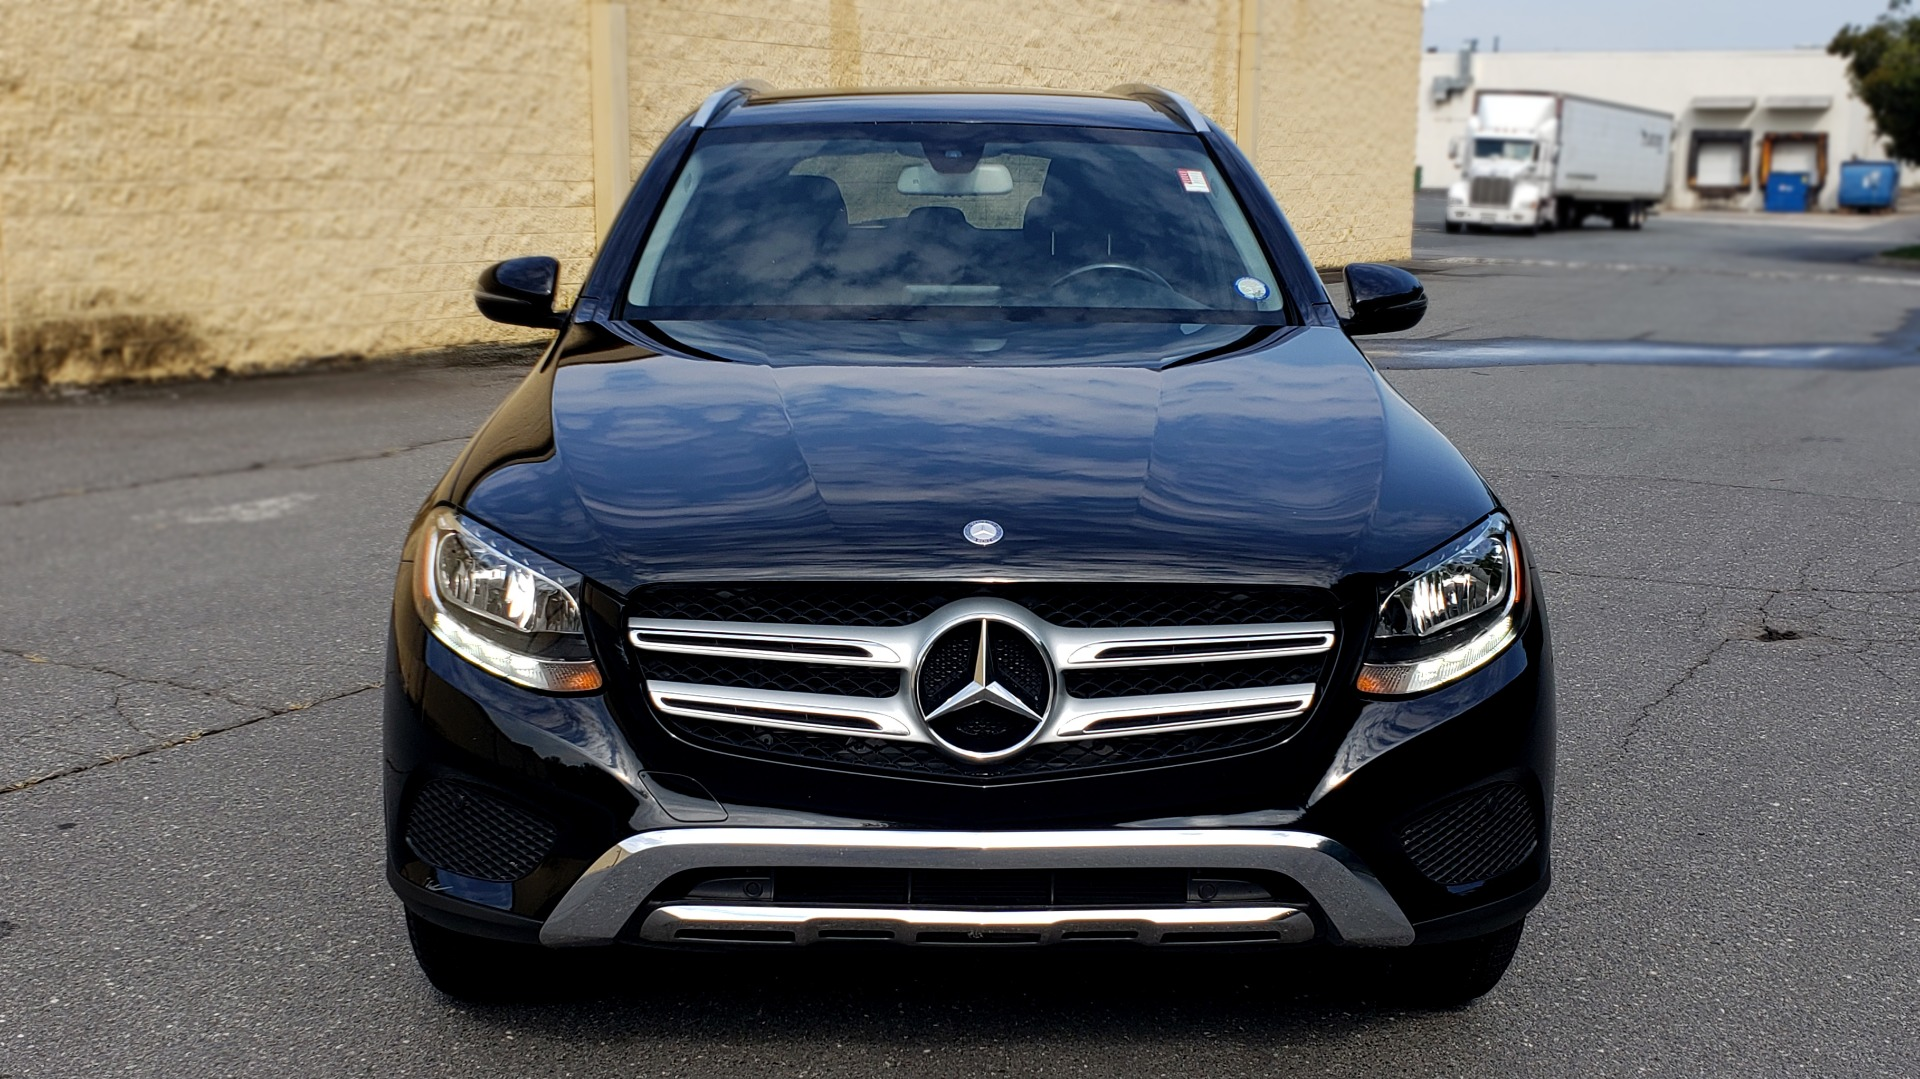 Used 2016 Mercedes-Benz GLC 300 / PANO-ROOF / HEATED SEATS / REARVIEW / NEW TIRES for sale Sold at Formula Imports in Charlotte NC 28227 21